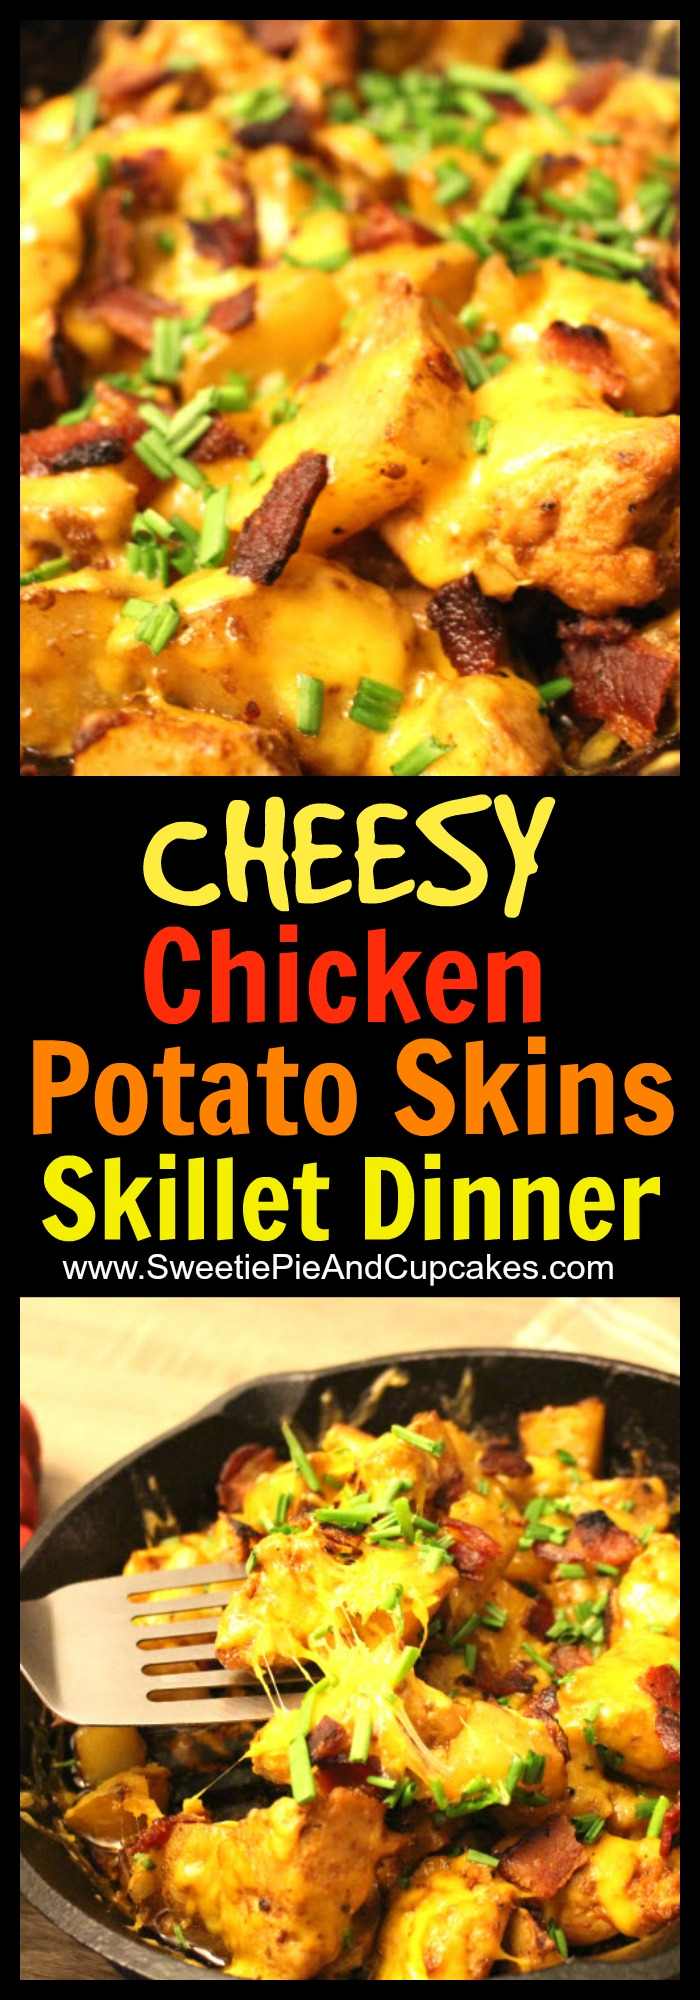 Chicken potato skins skillet dinner recipe at Sweetie Pie and Cupcakes